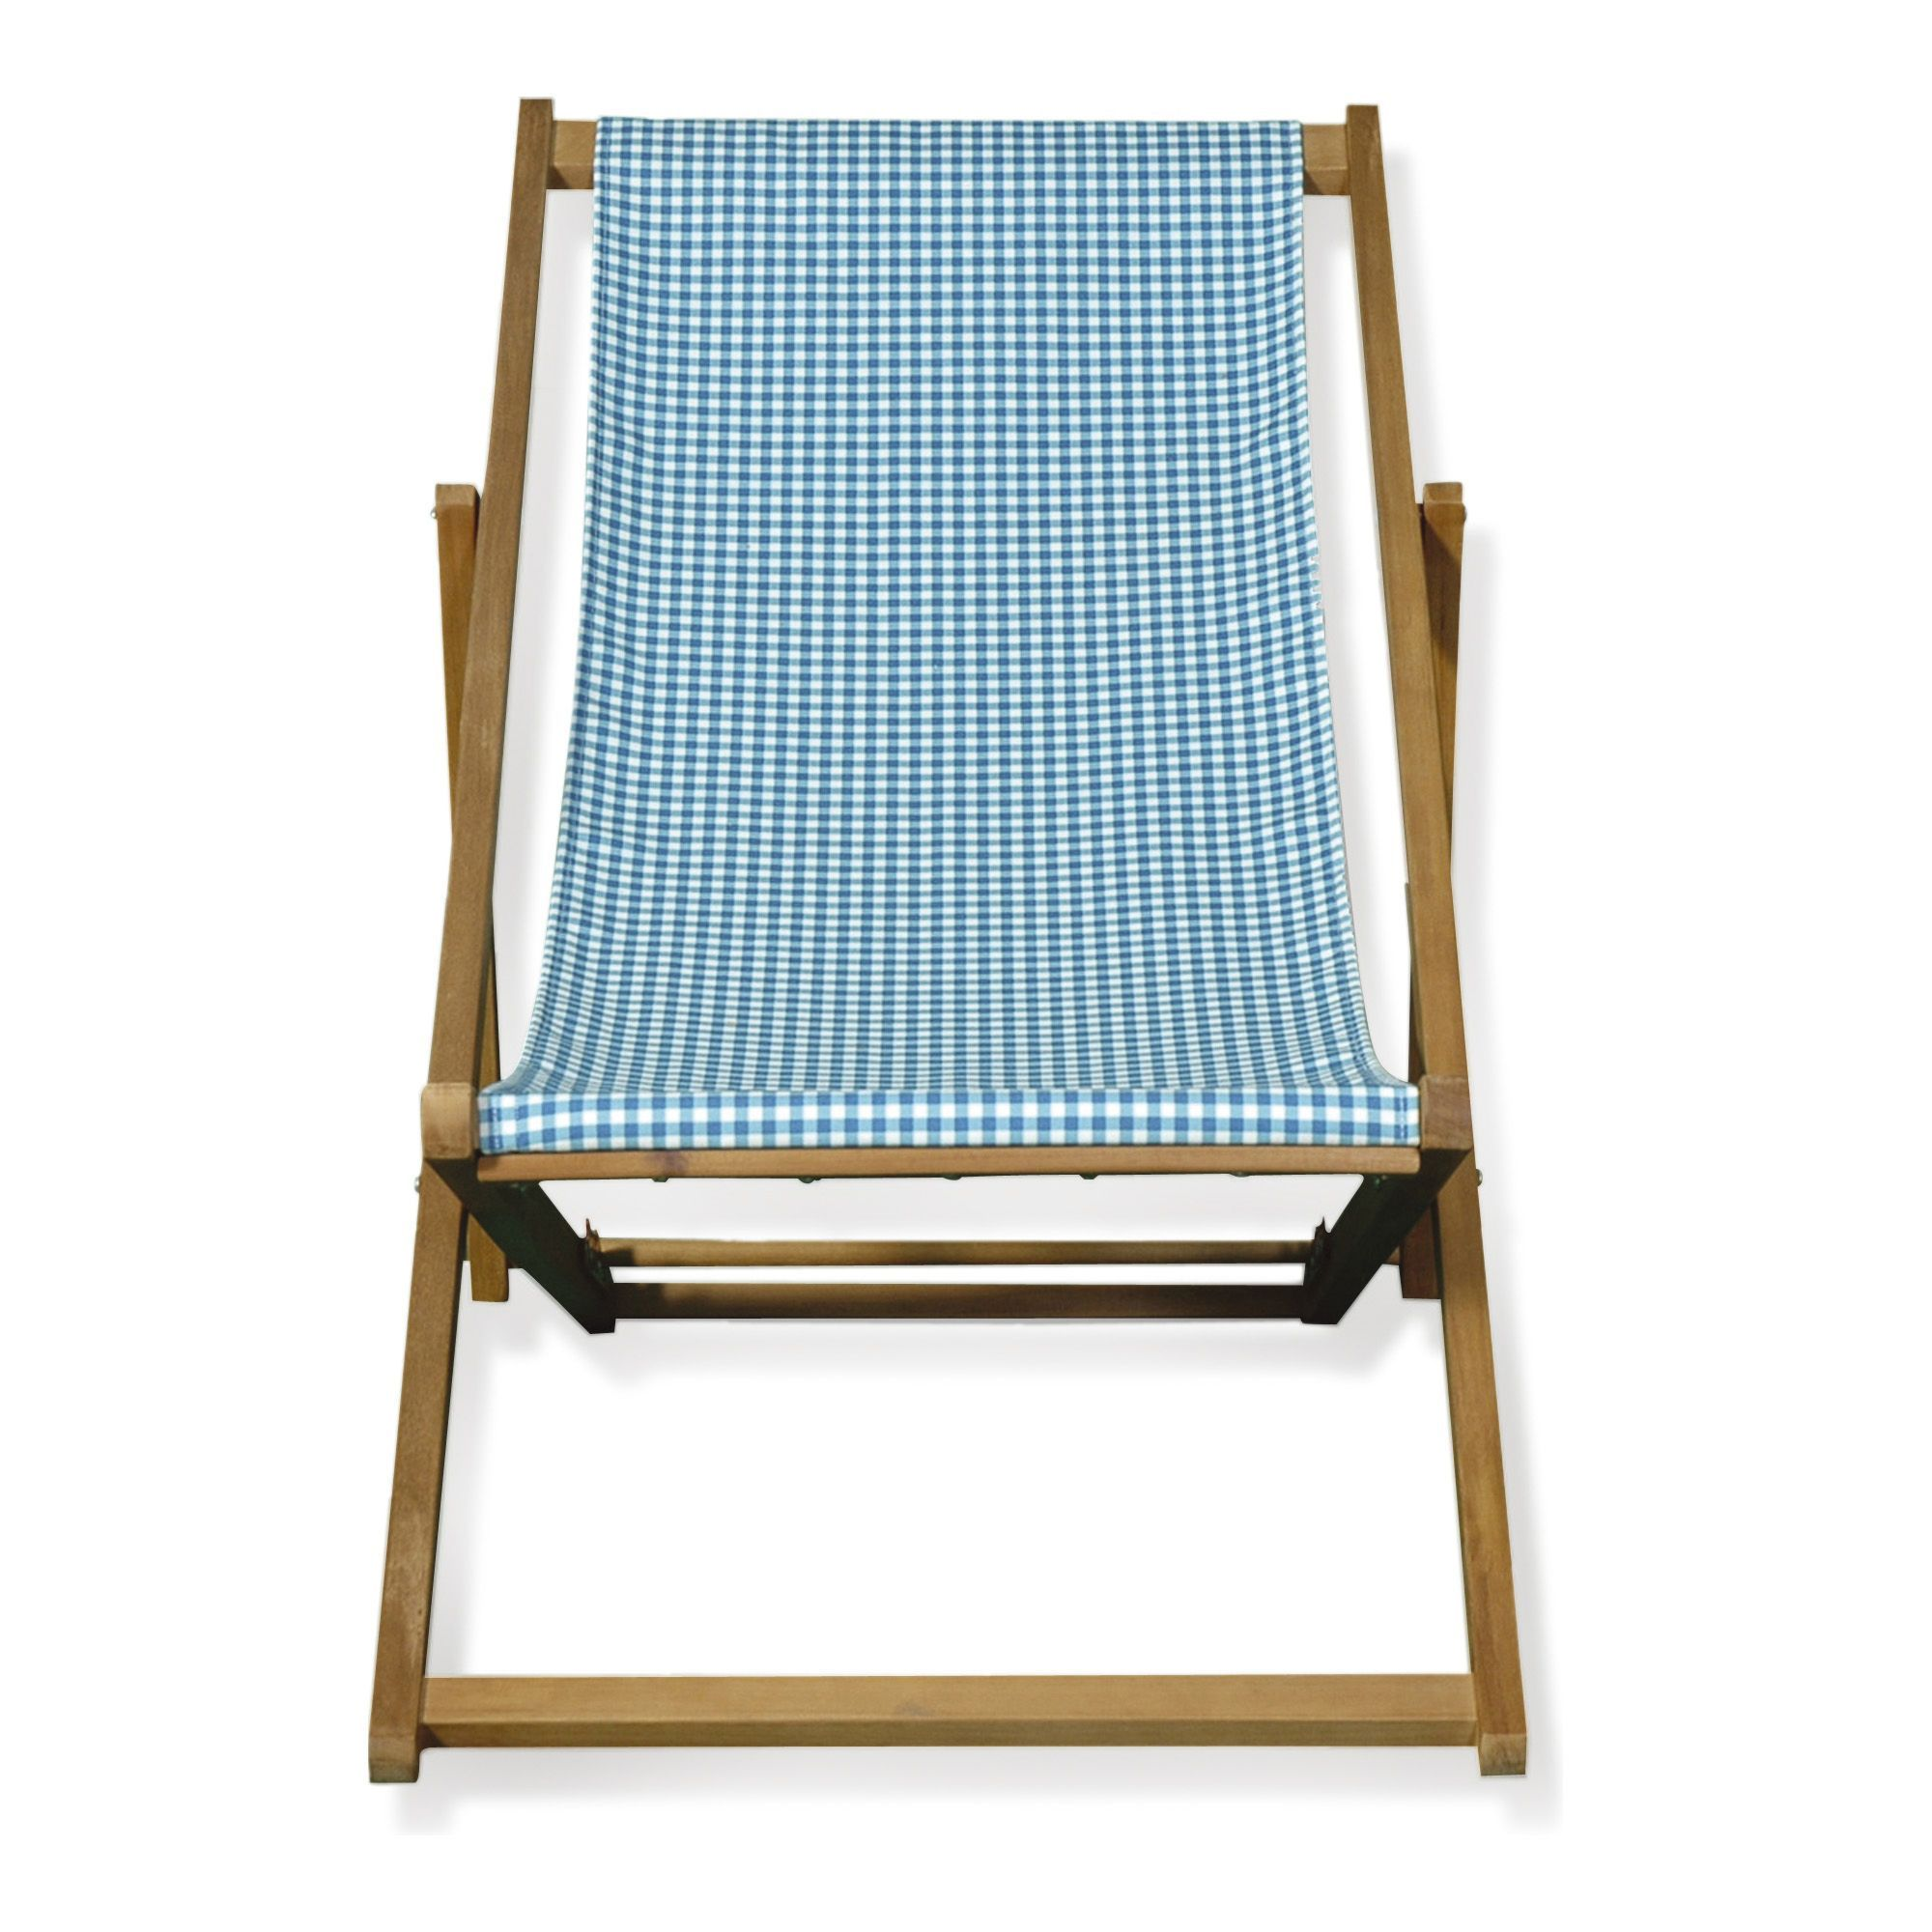 Vichy Chaises bleu 4 Chilienne longues positions vichy uPZXiOk